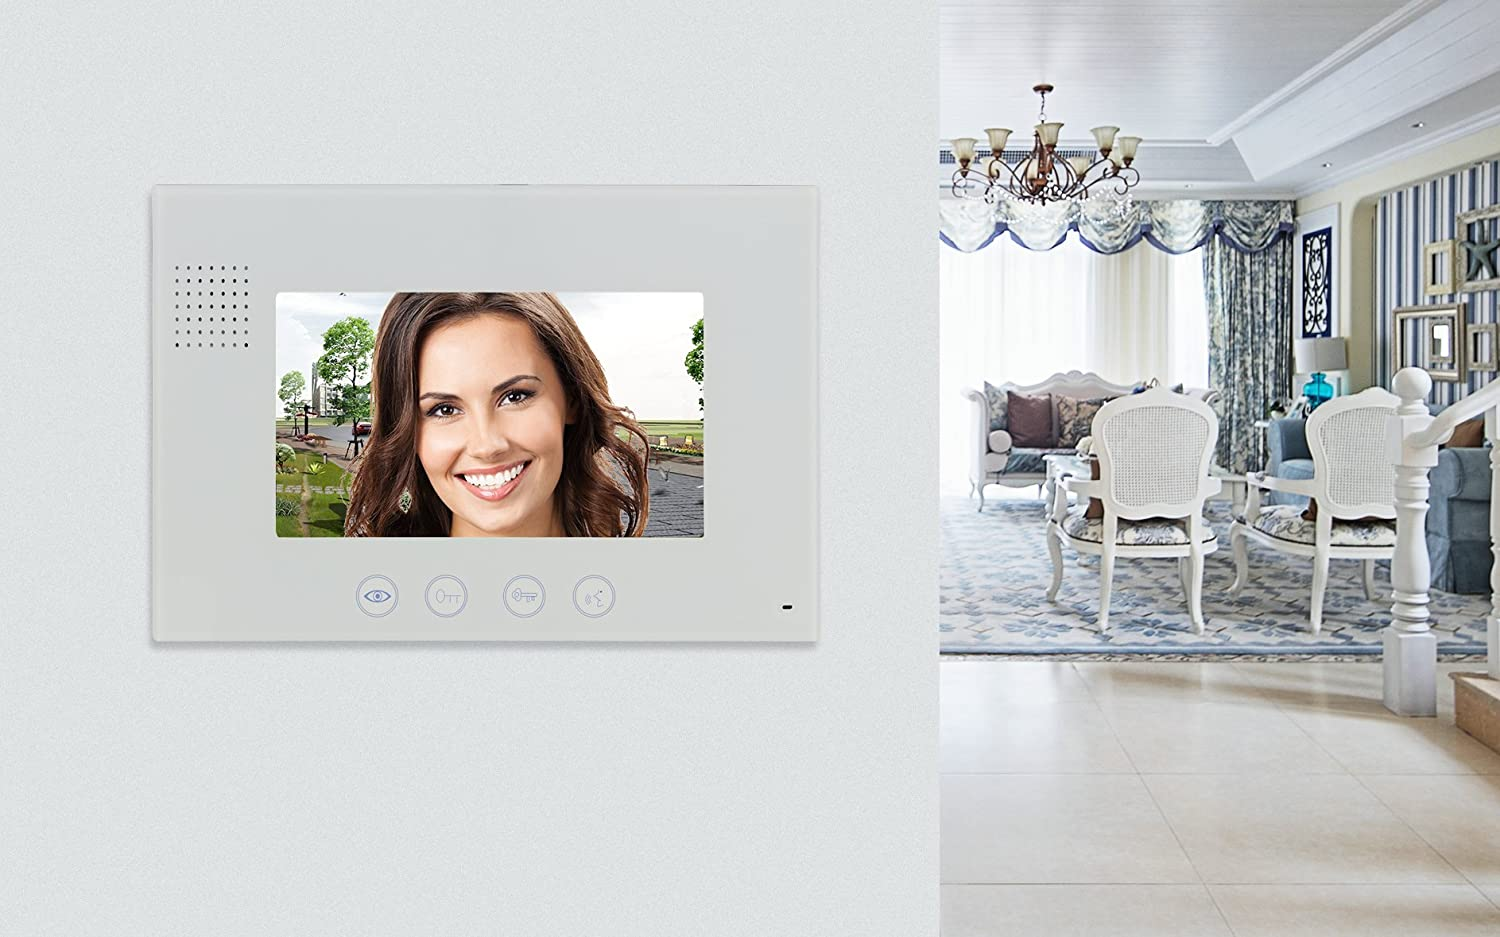 Gbf Smart Four Wire Door Phone Doorbell Circuit Diagram As Well Ring Box Contents On Wiring Intercom System Camera Photo